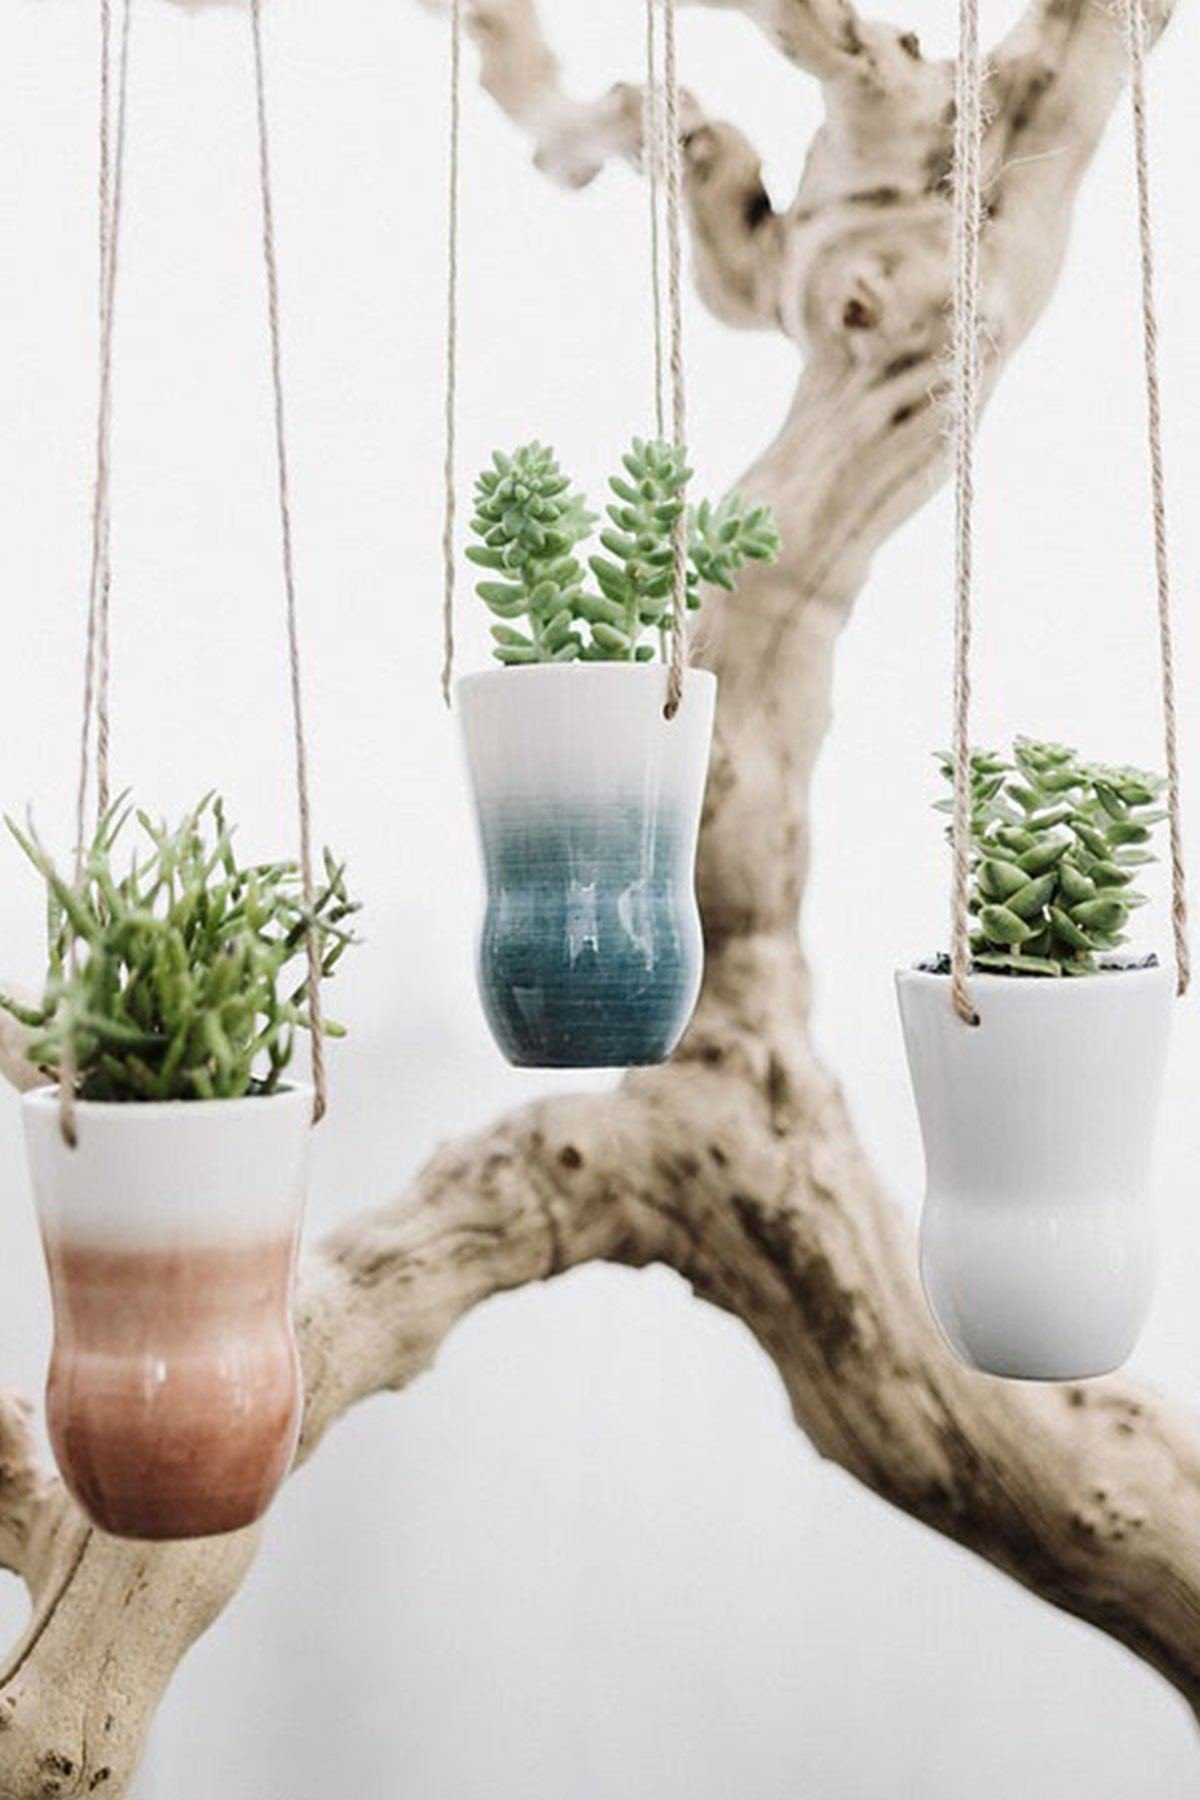 Color Washed Hanging Succulent Planter, 3in pot with Live Plant Houseplant Home Decor